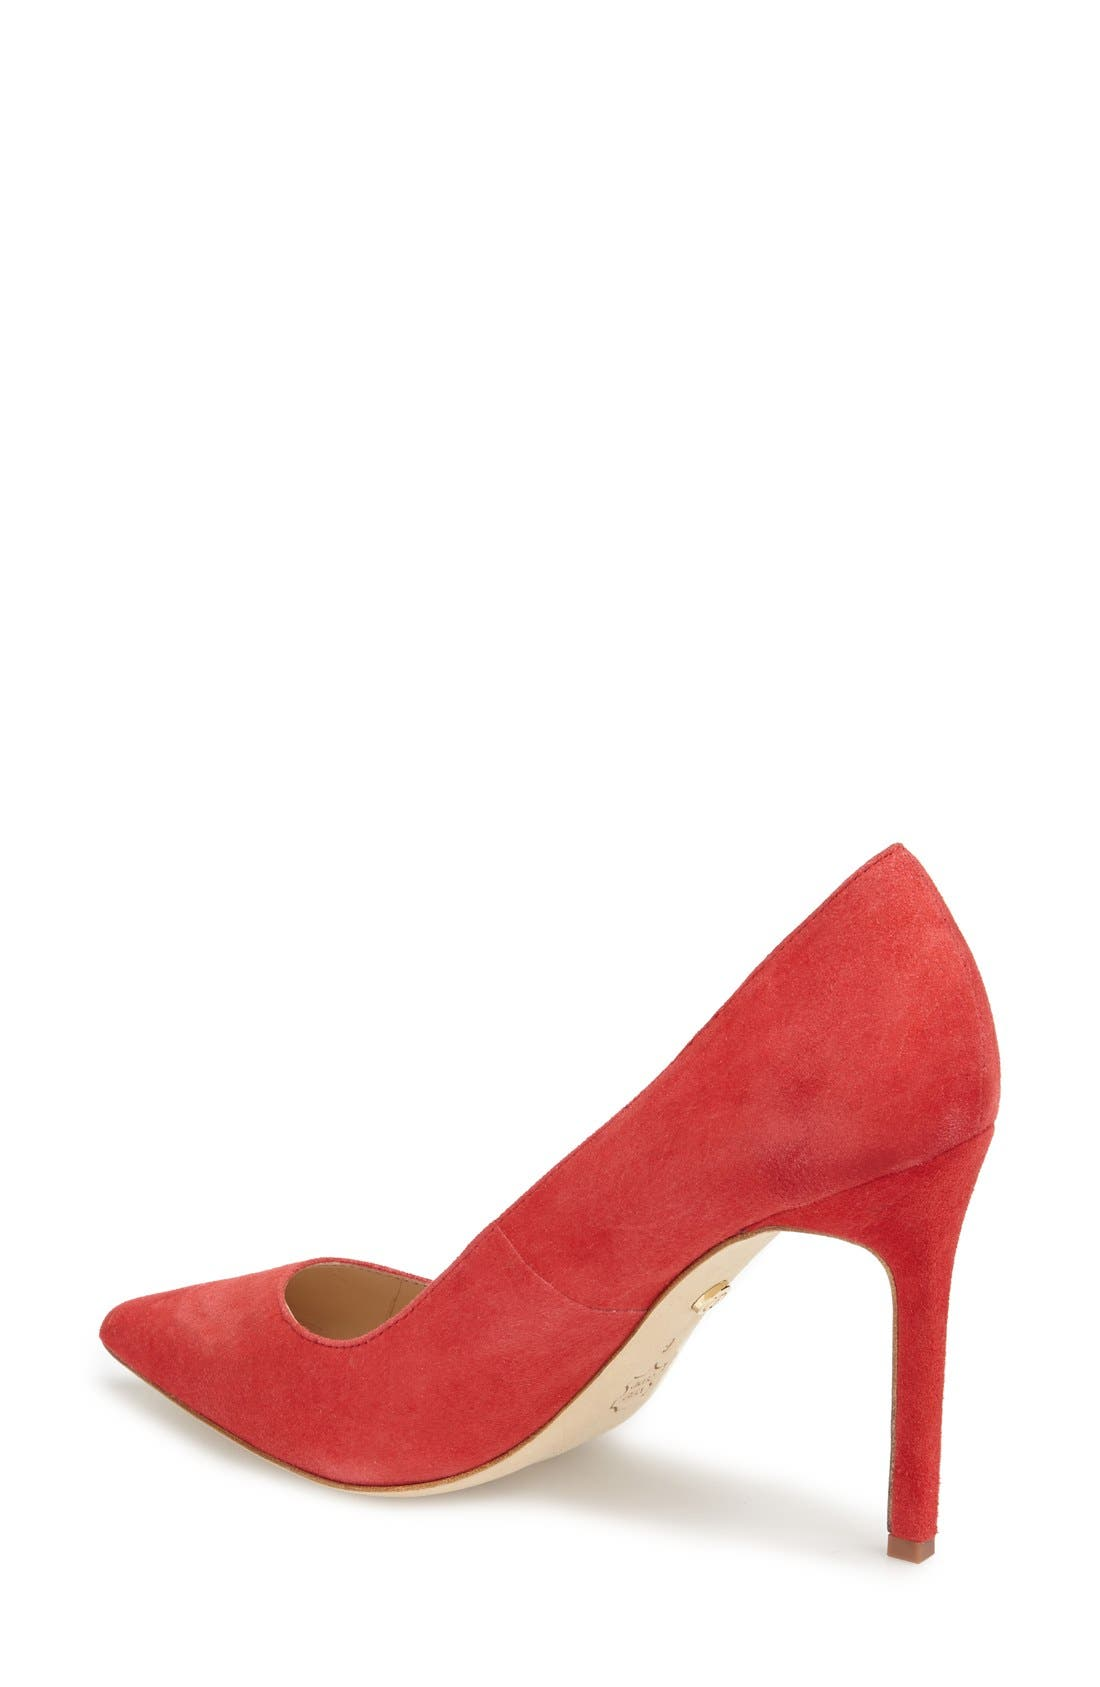 'Caterina' Pointy Toe Pump,                             Alternate thumbnail 19, color,